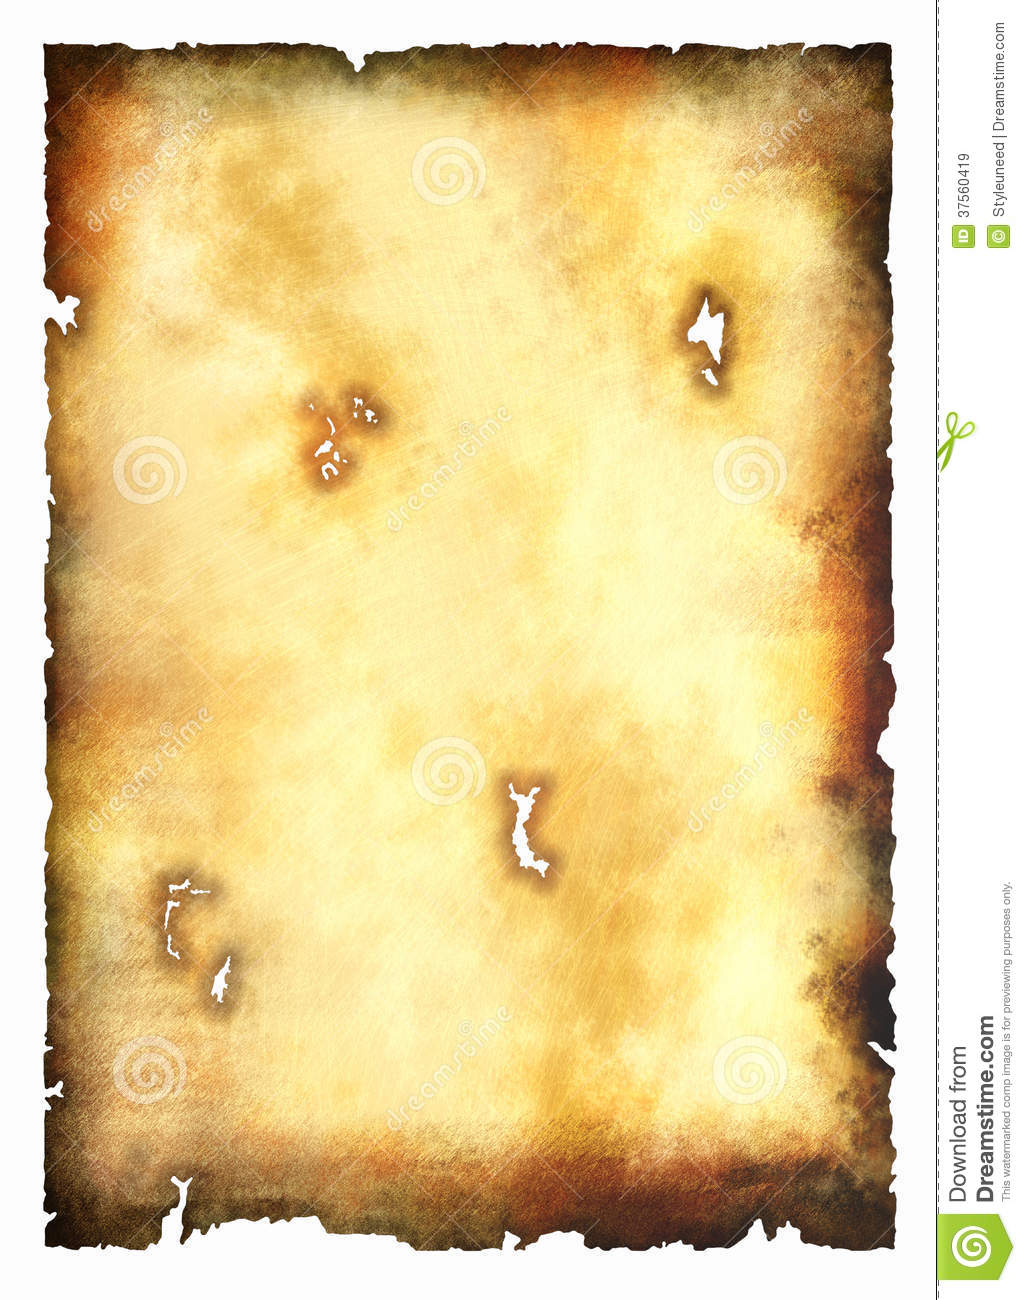 Burnt Parchment Paper Royalty Free Stock Images - Image ...